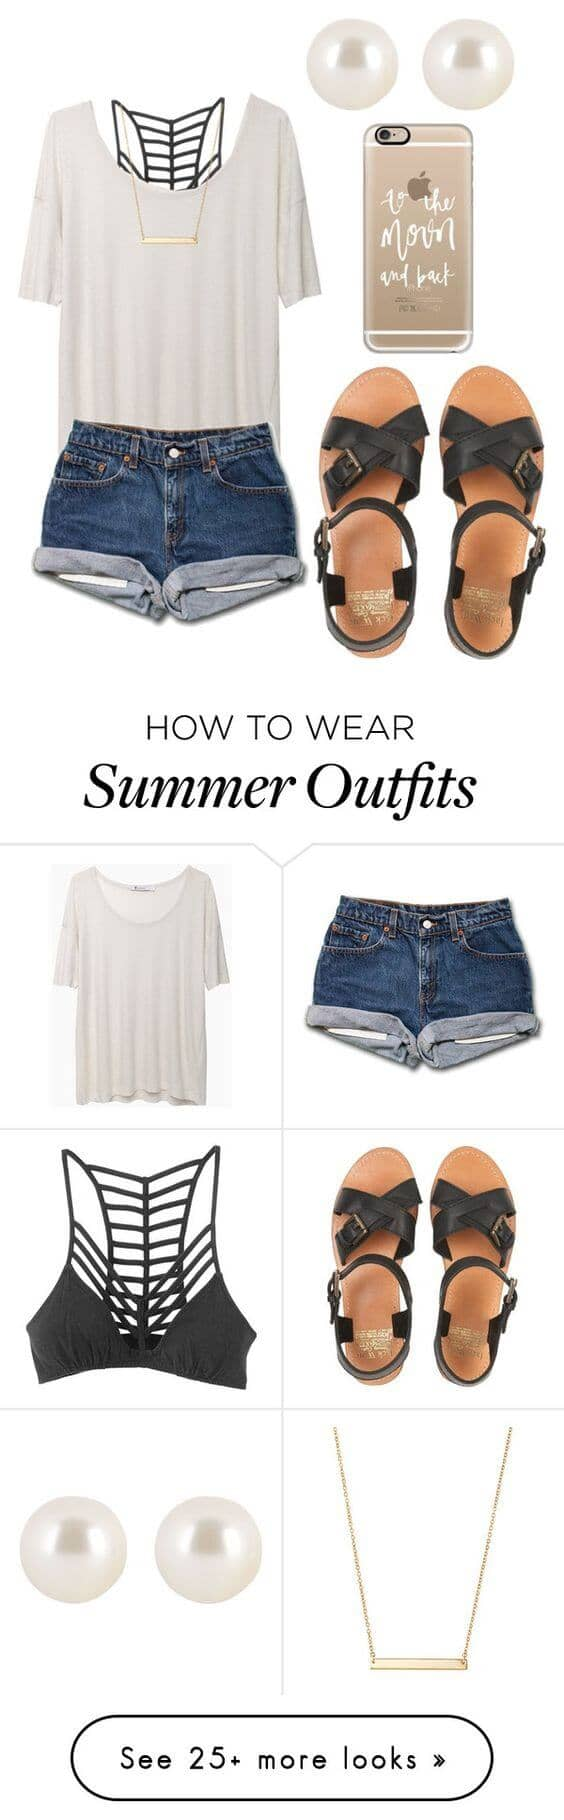 27 Lovely Summer Oufits With Shorts